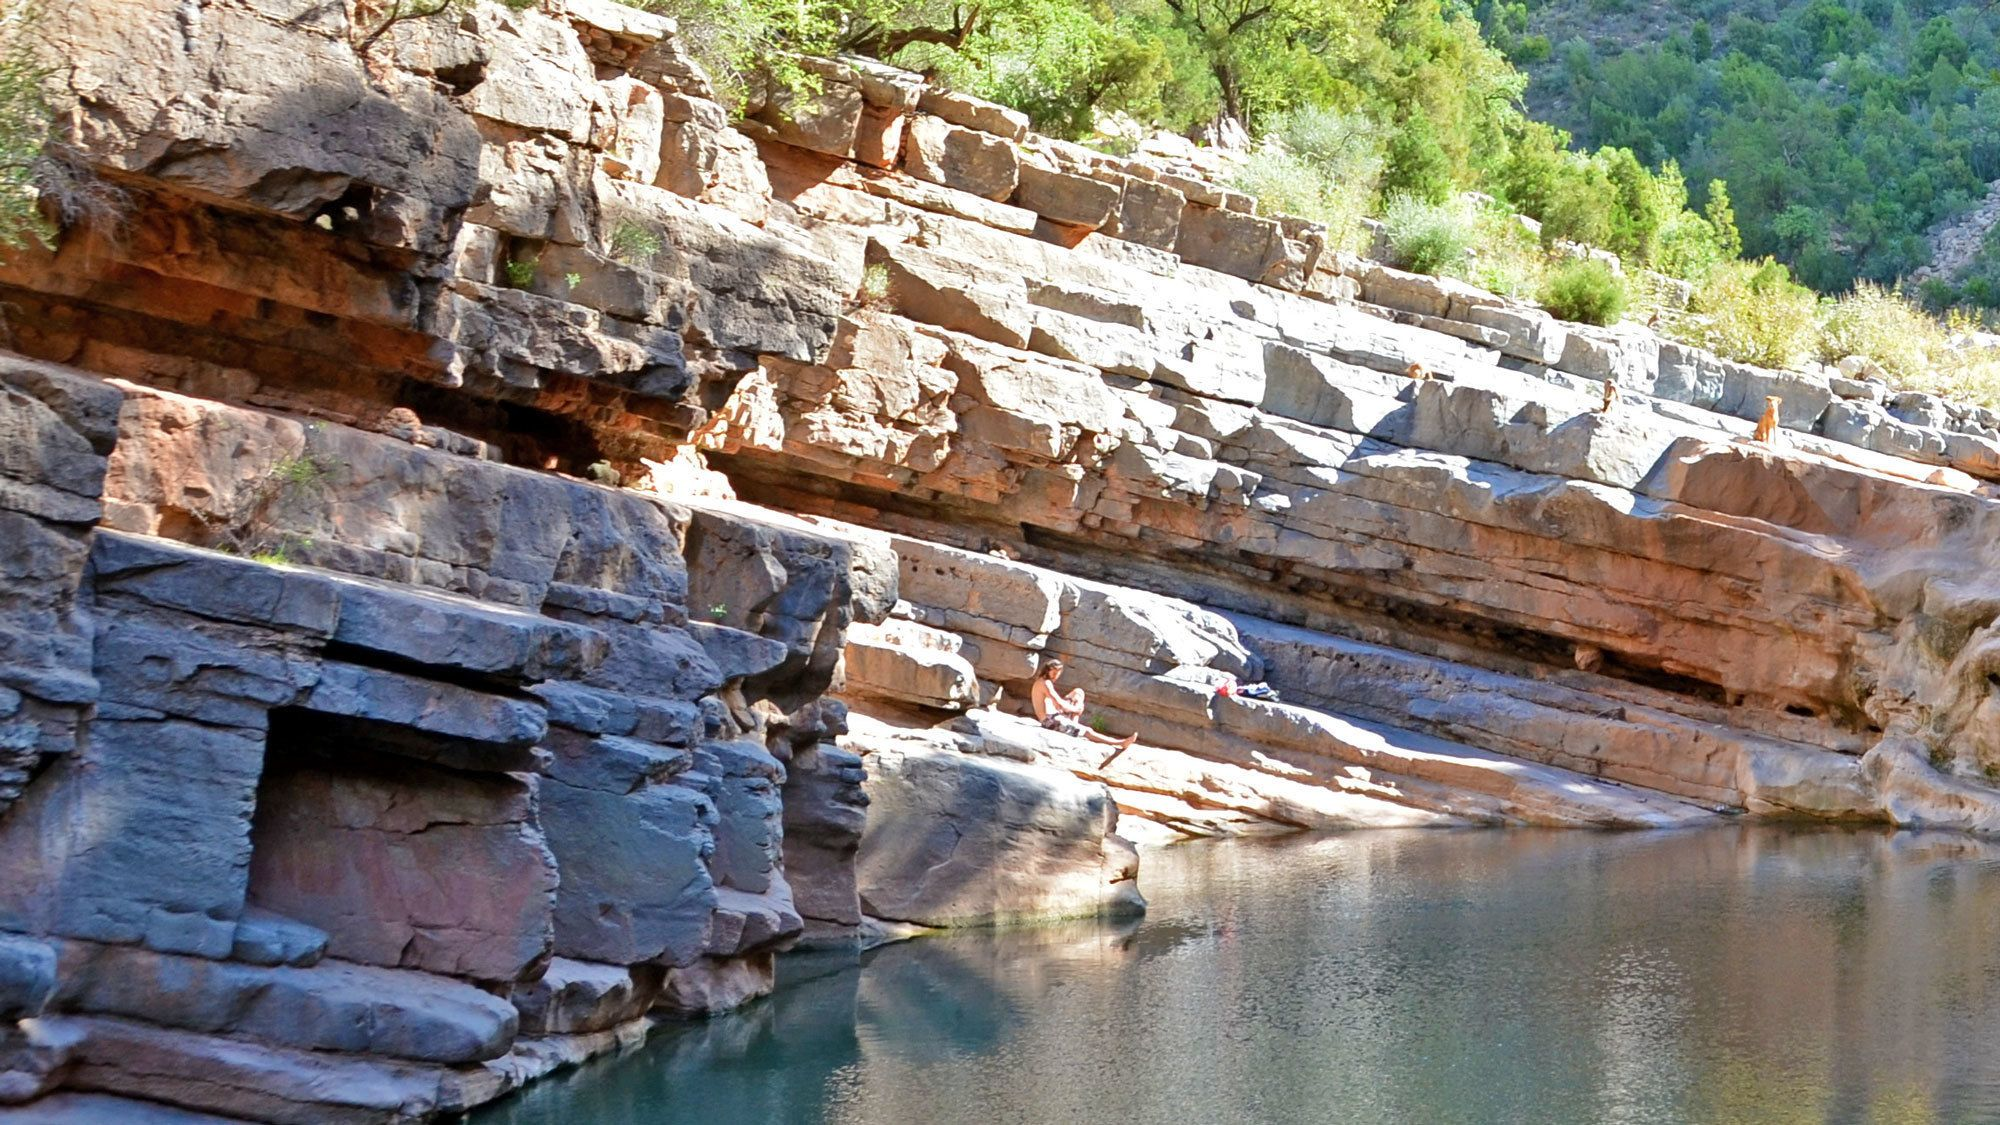 Cliffs and rock pool in Paradise Valley